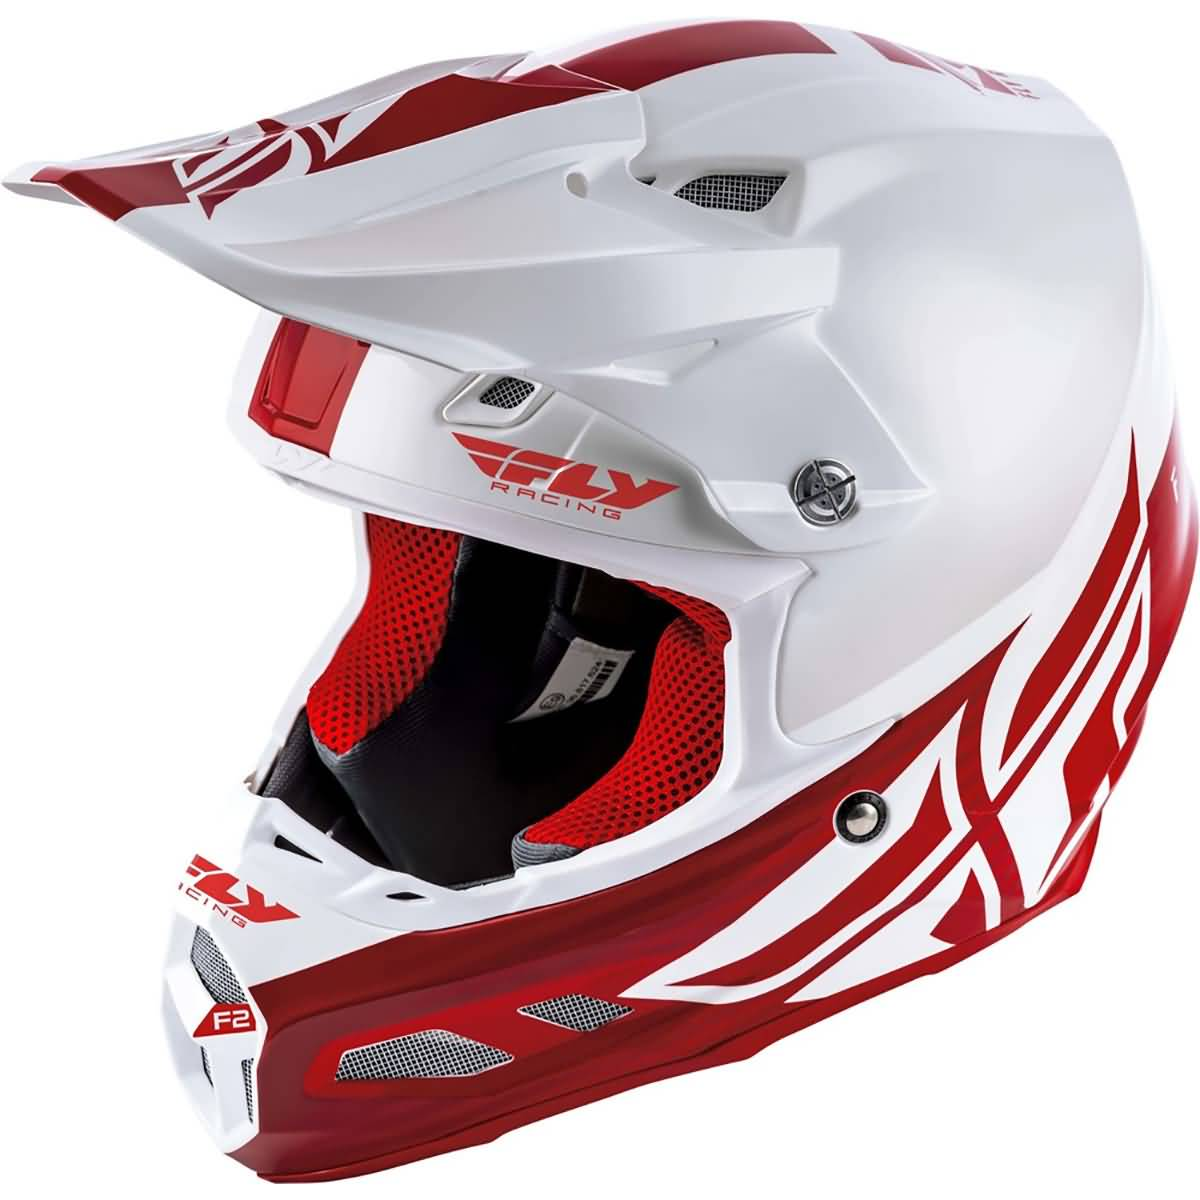 Fly Racing F2 Carbon MIPS Shield Adult Snow Helmets-73-4242